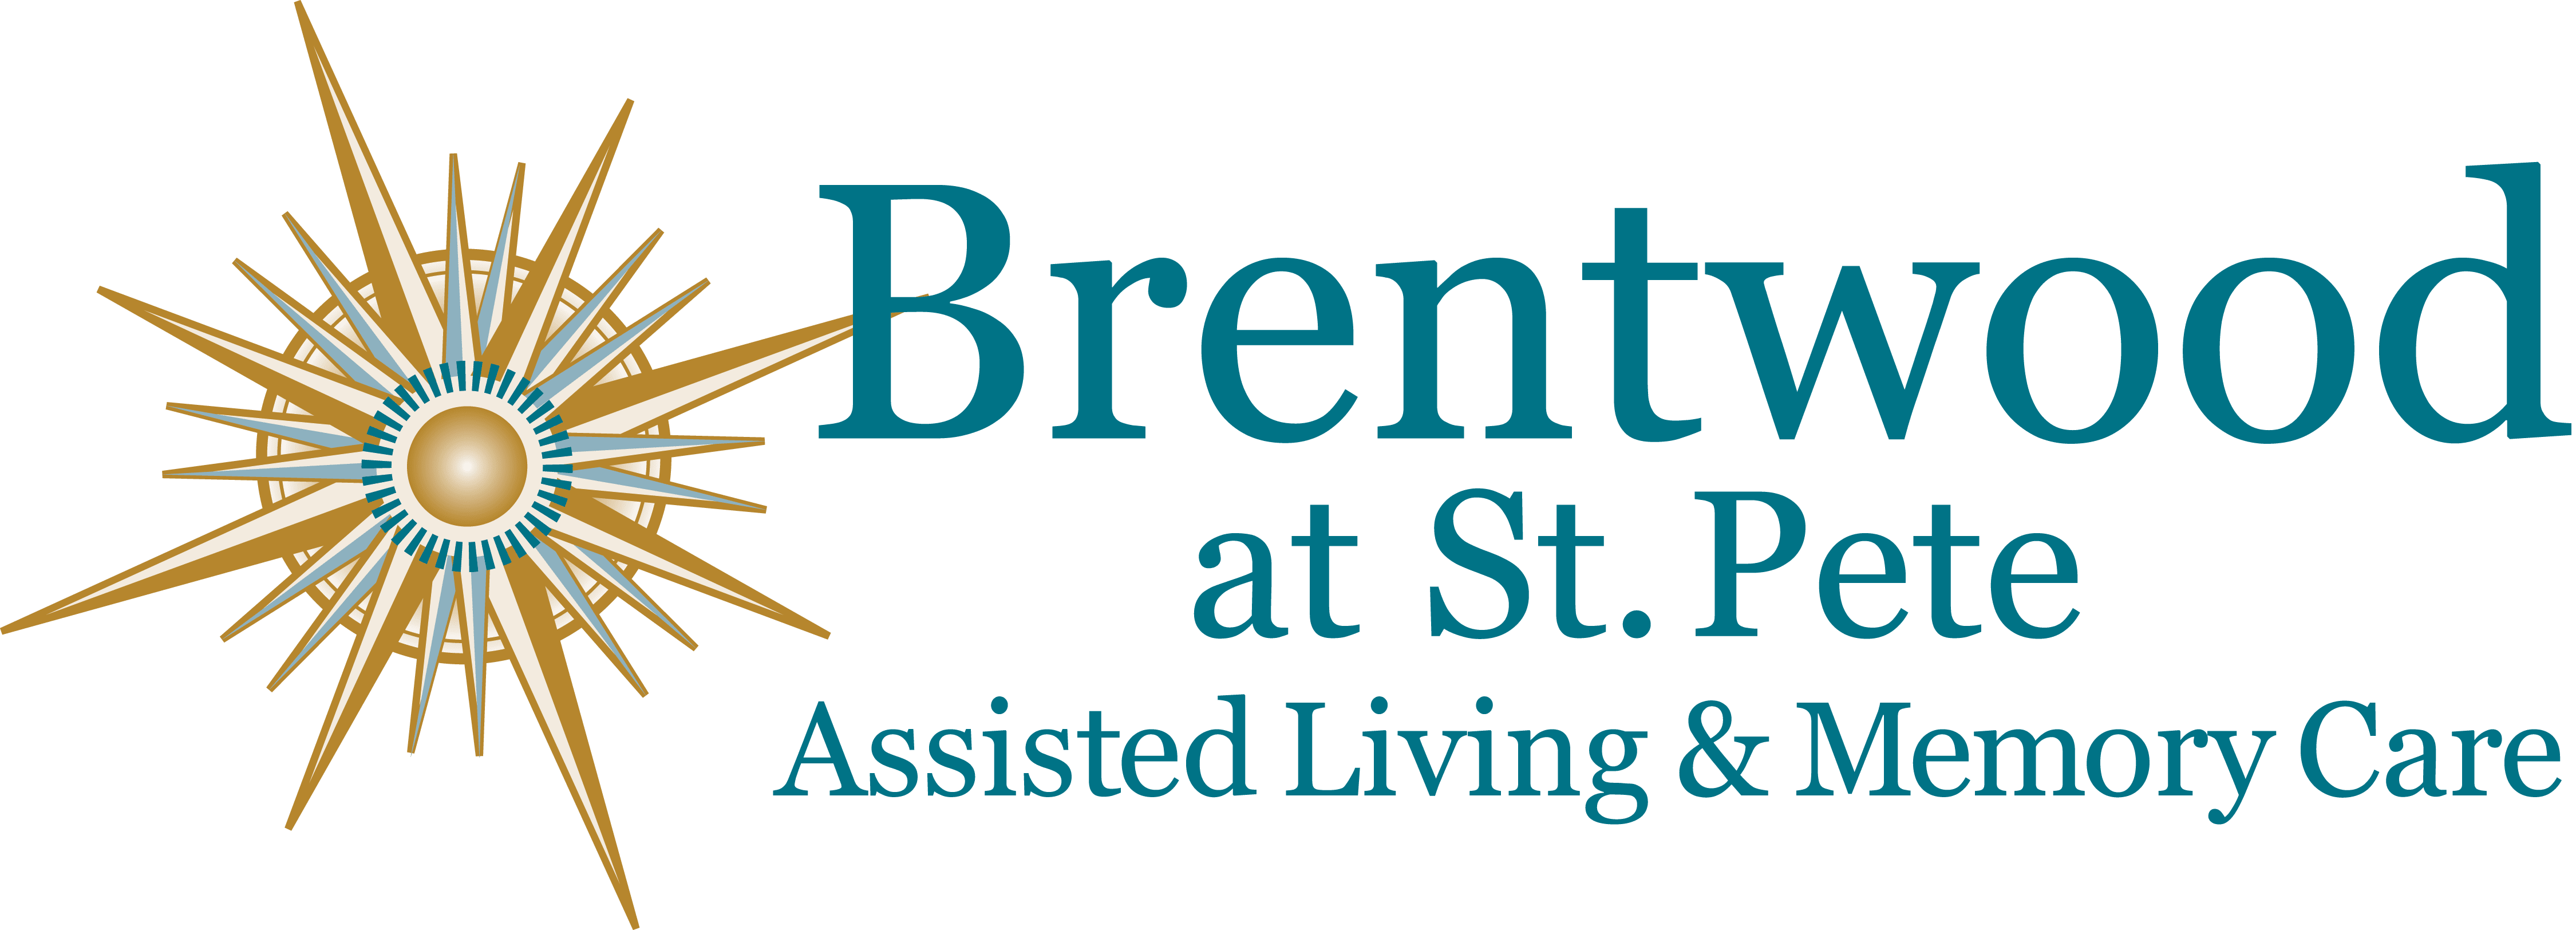 Brentwood at St. Pete Logo